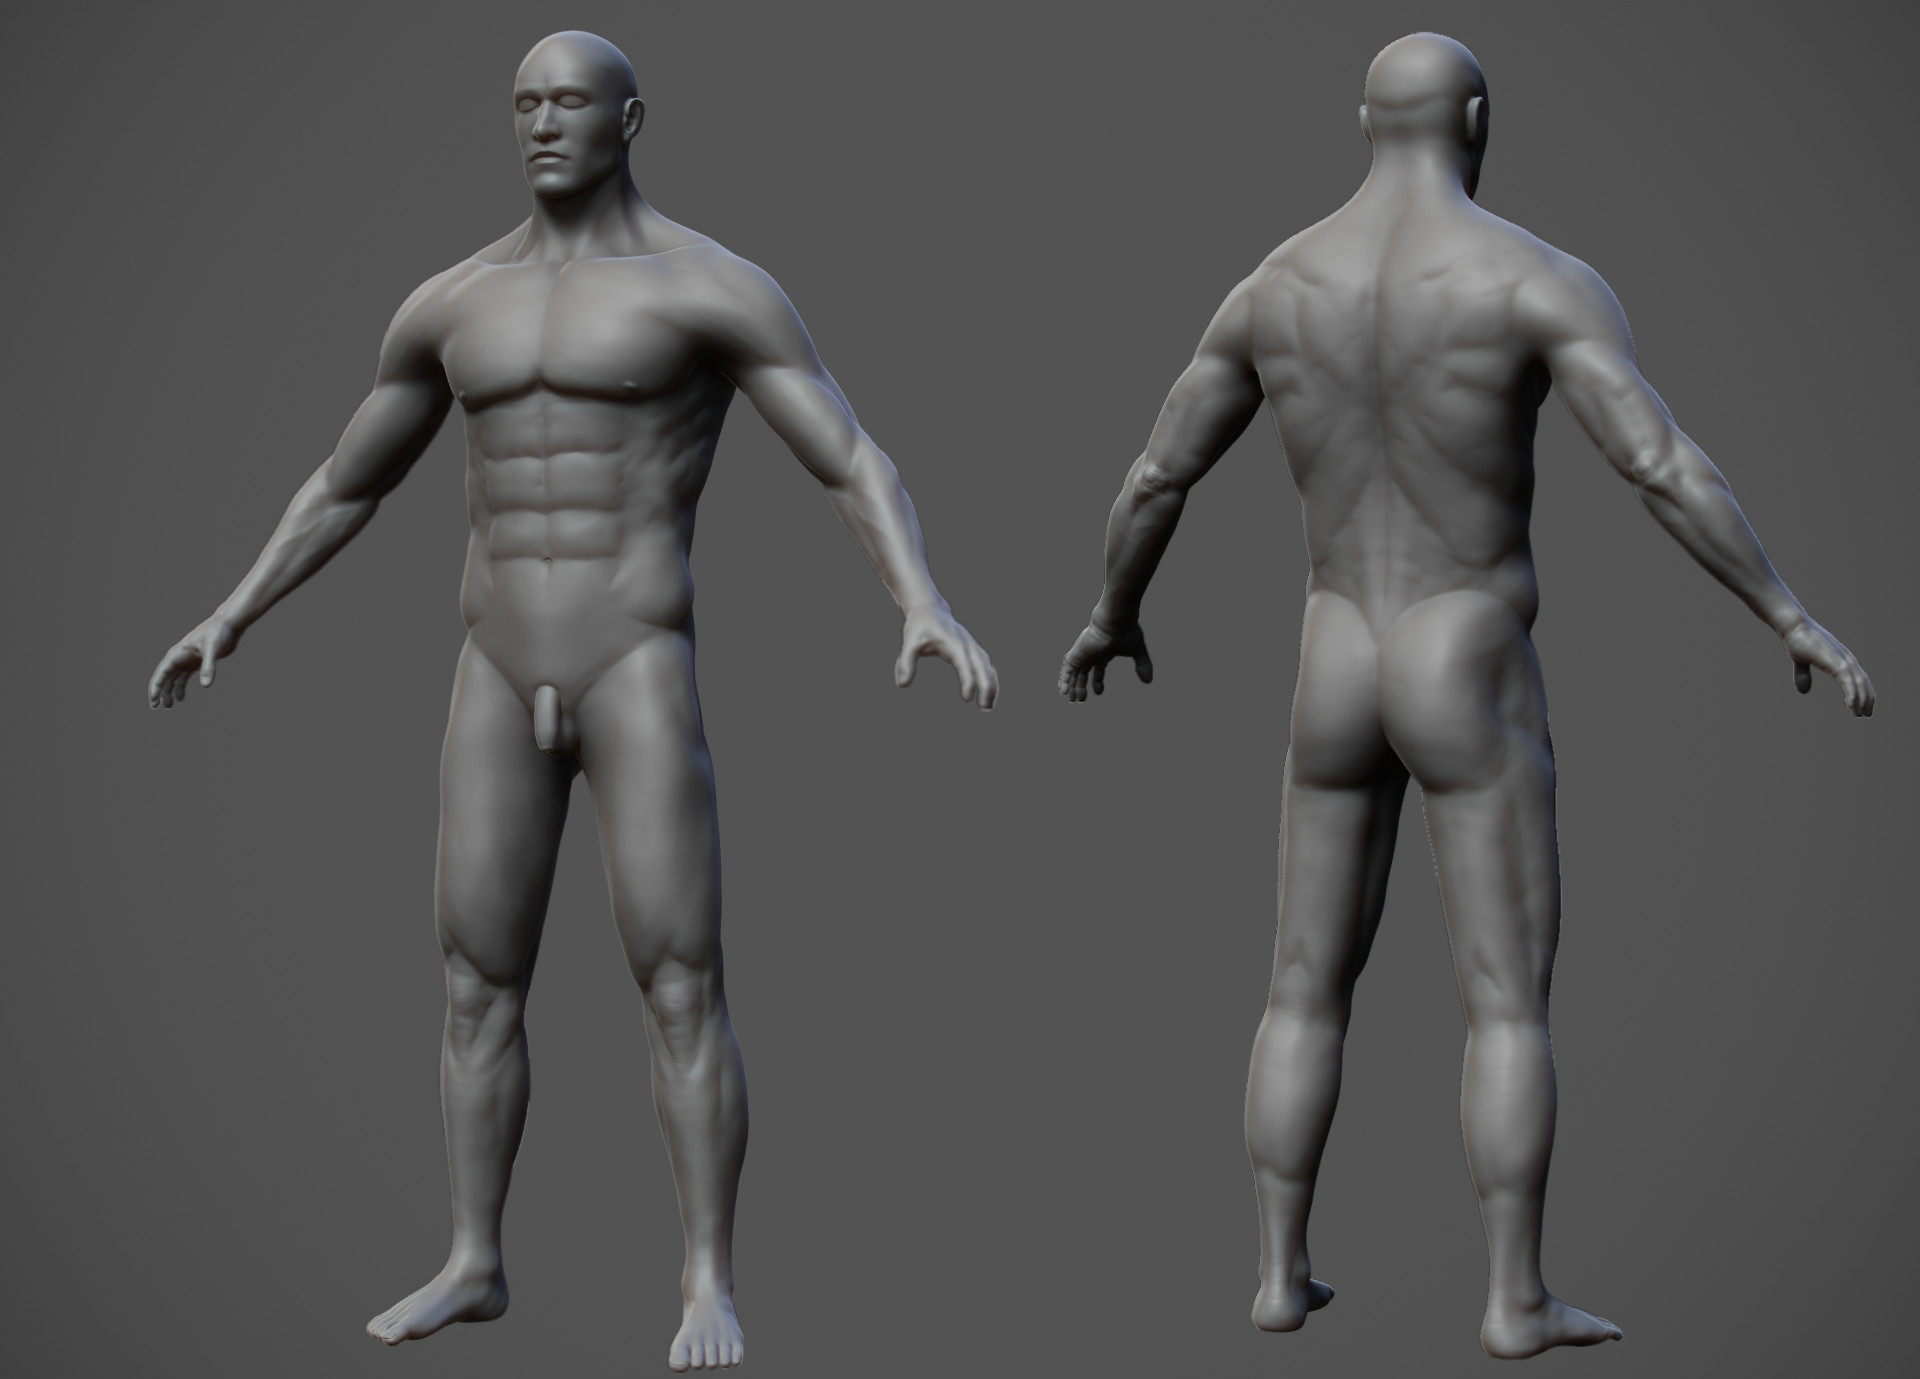 male anatomy study gallery - learn human anatomy image, Human Body